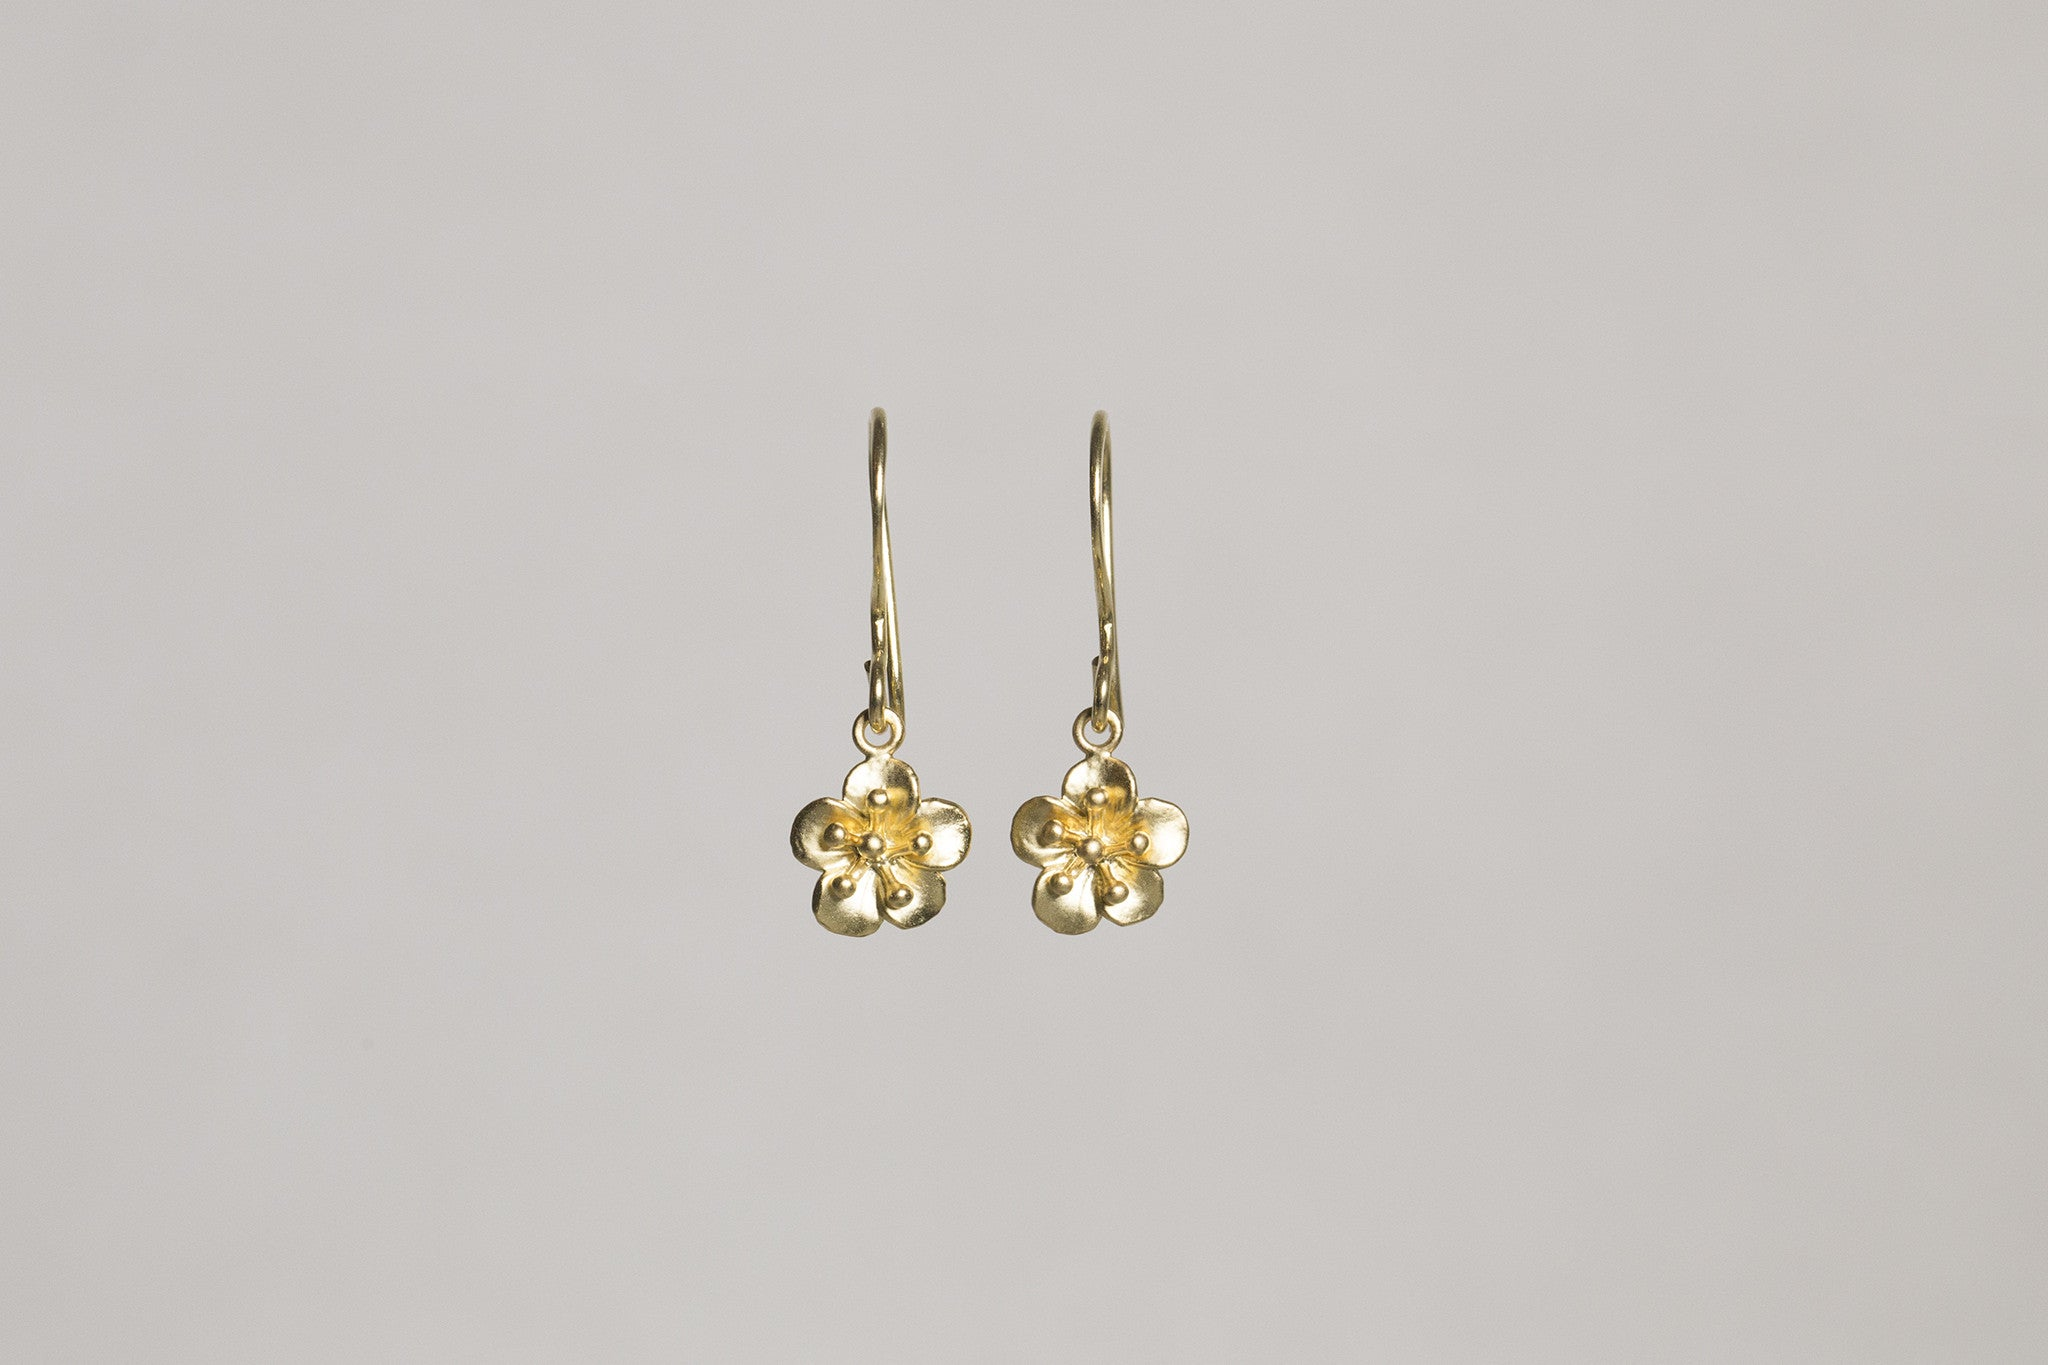 adorable sakura gold plated drop earrings by Mirabelle